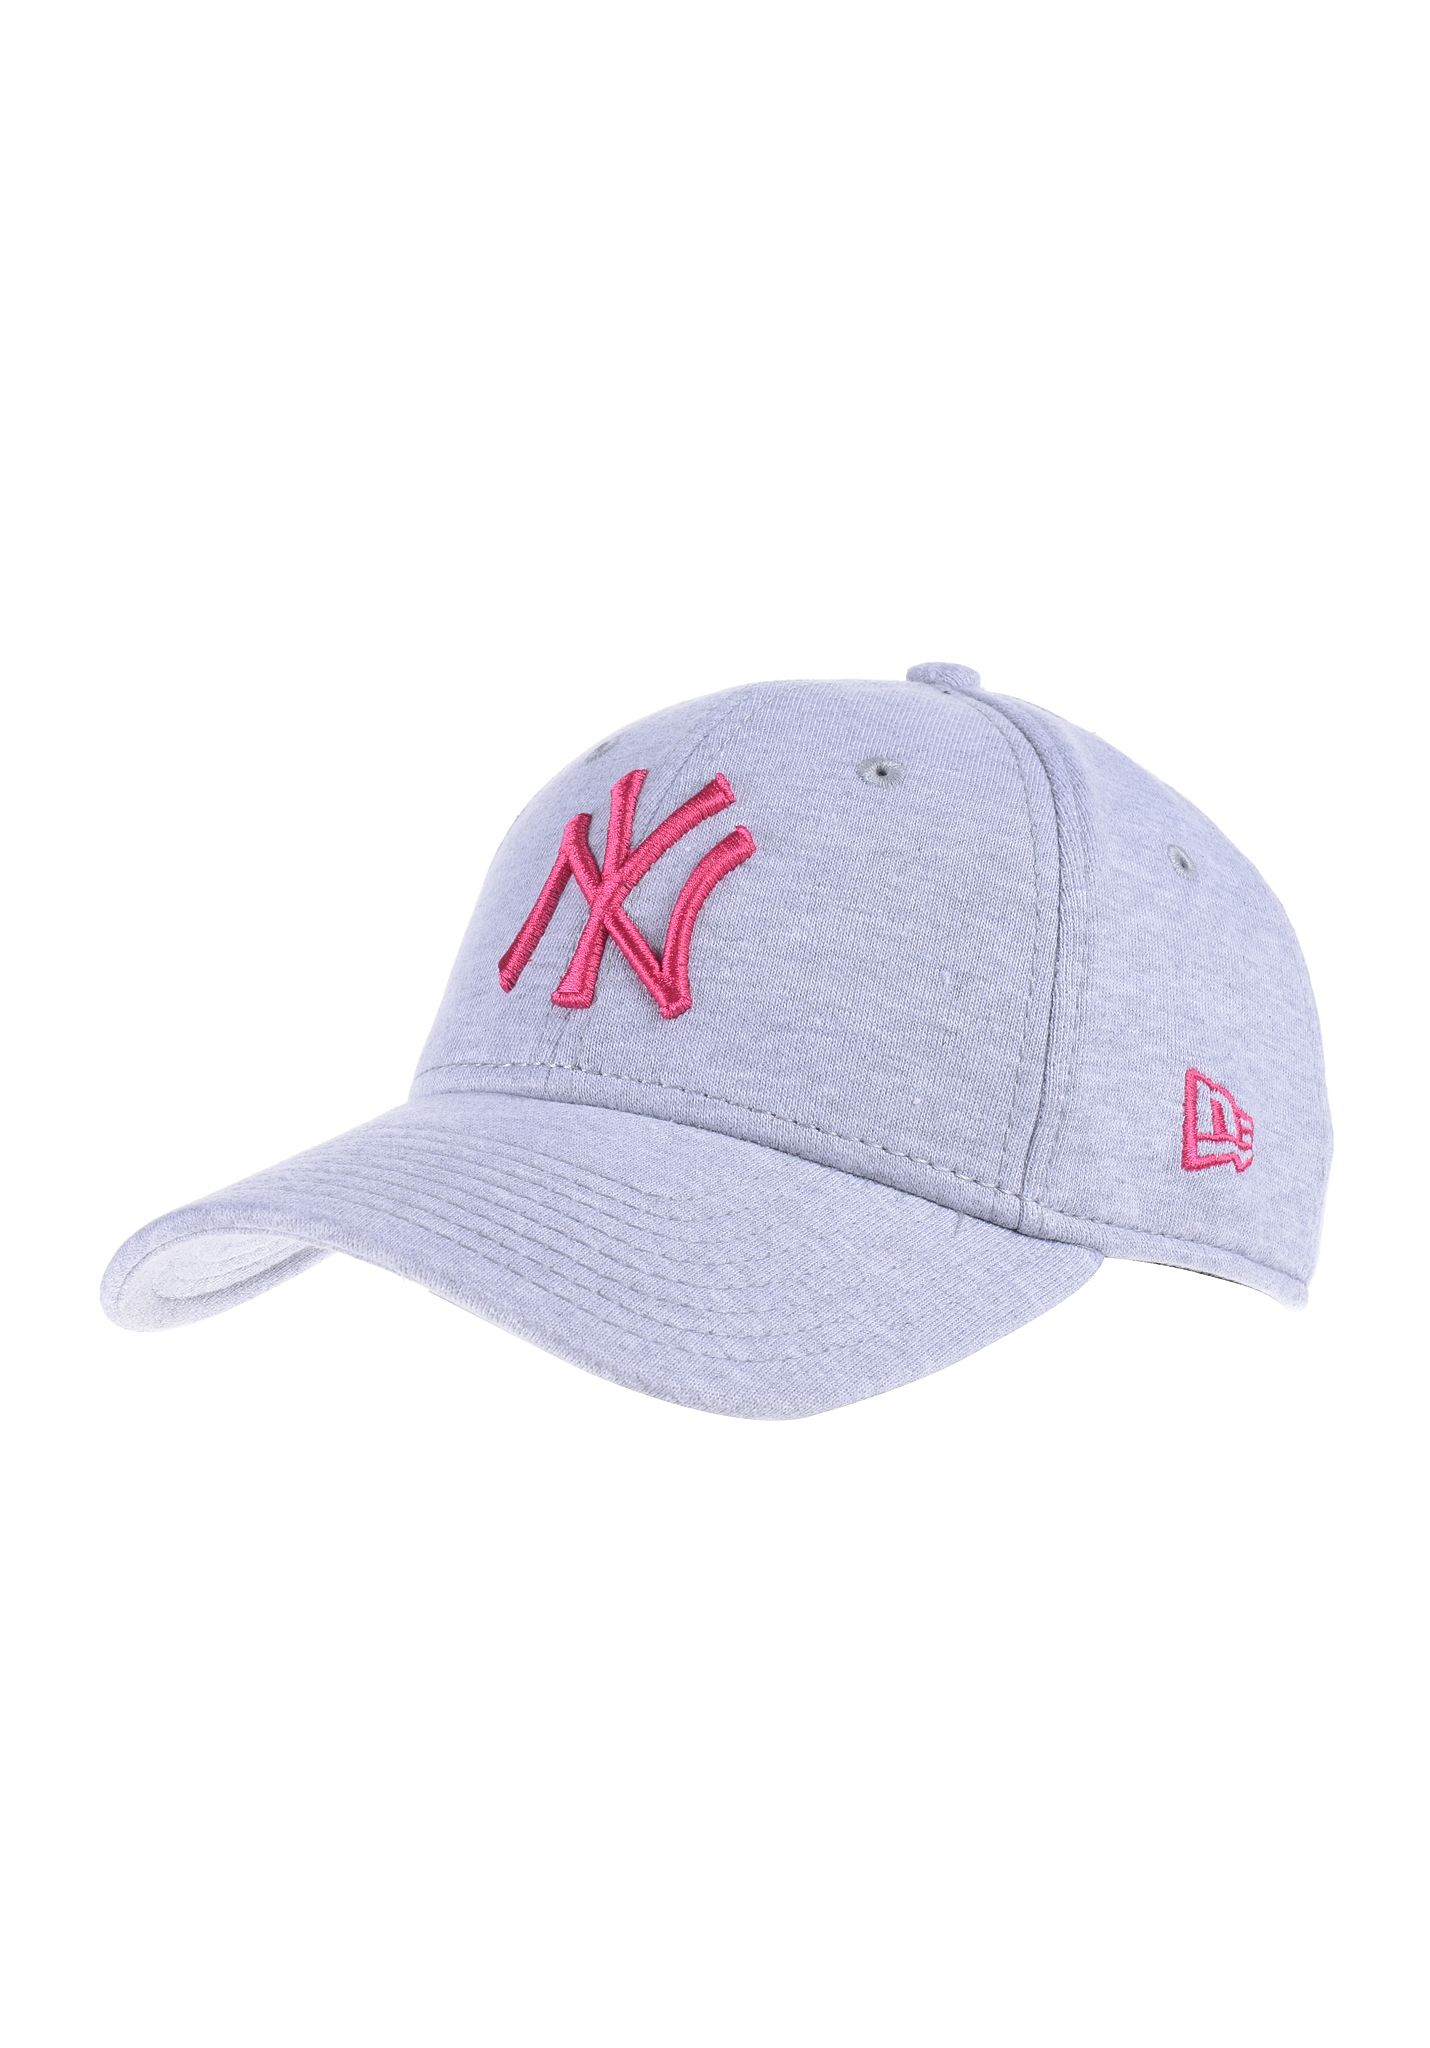 164a4edc6f5d3 NEW Era Jers Ess 940 New York Yankees - Gorra para Mujeres - Rosa - Planet  Sports